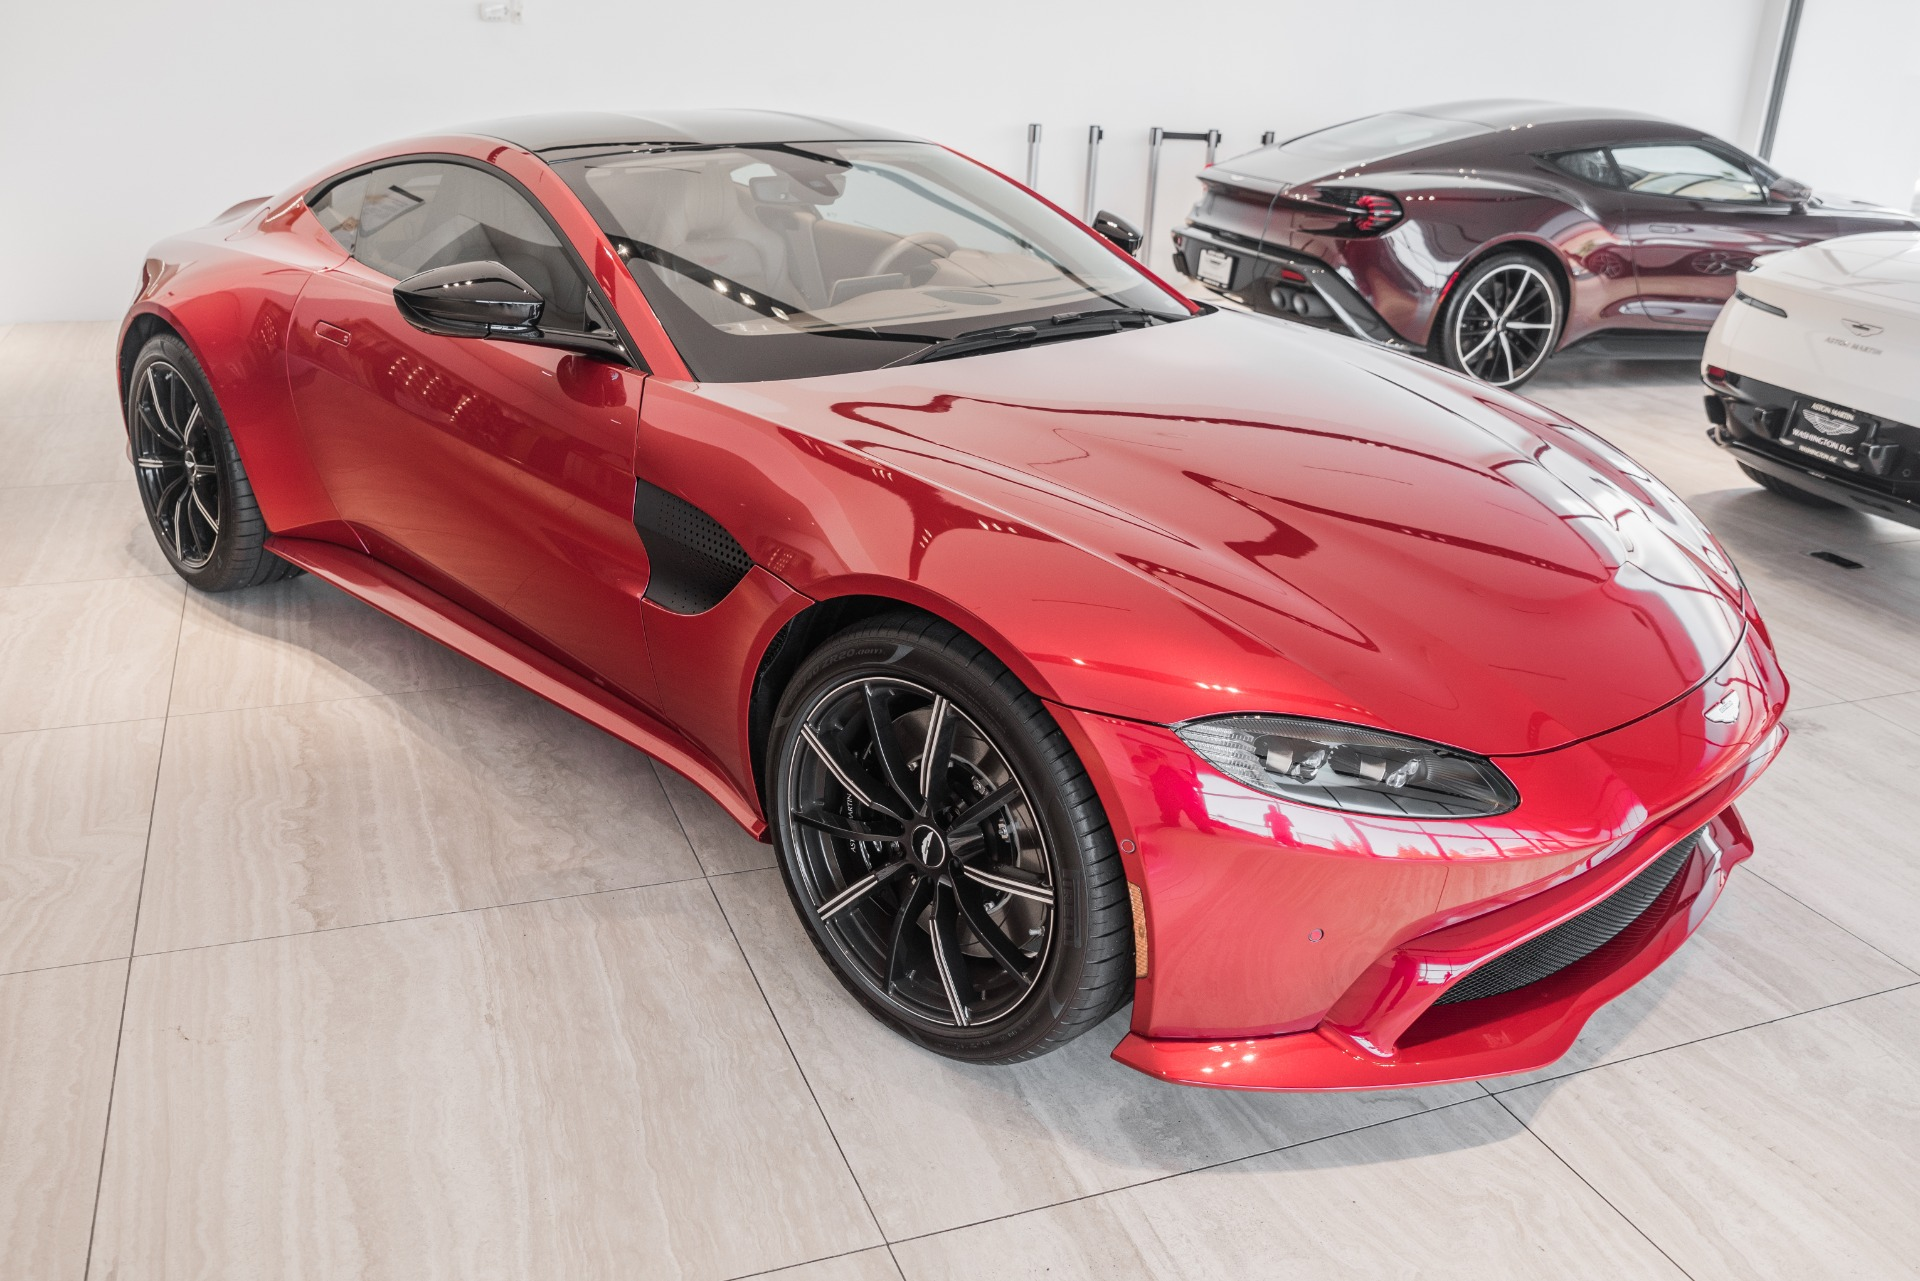 2020 Aston Martin Vantage Stock 2n03300 For Sale Near